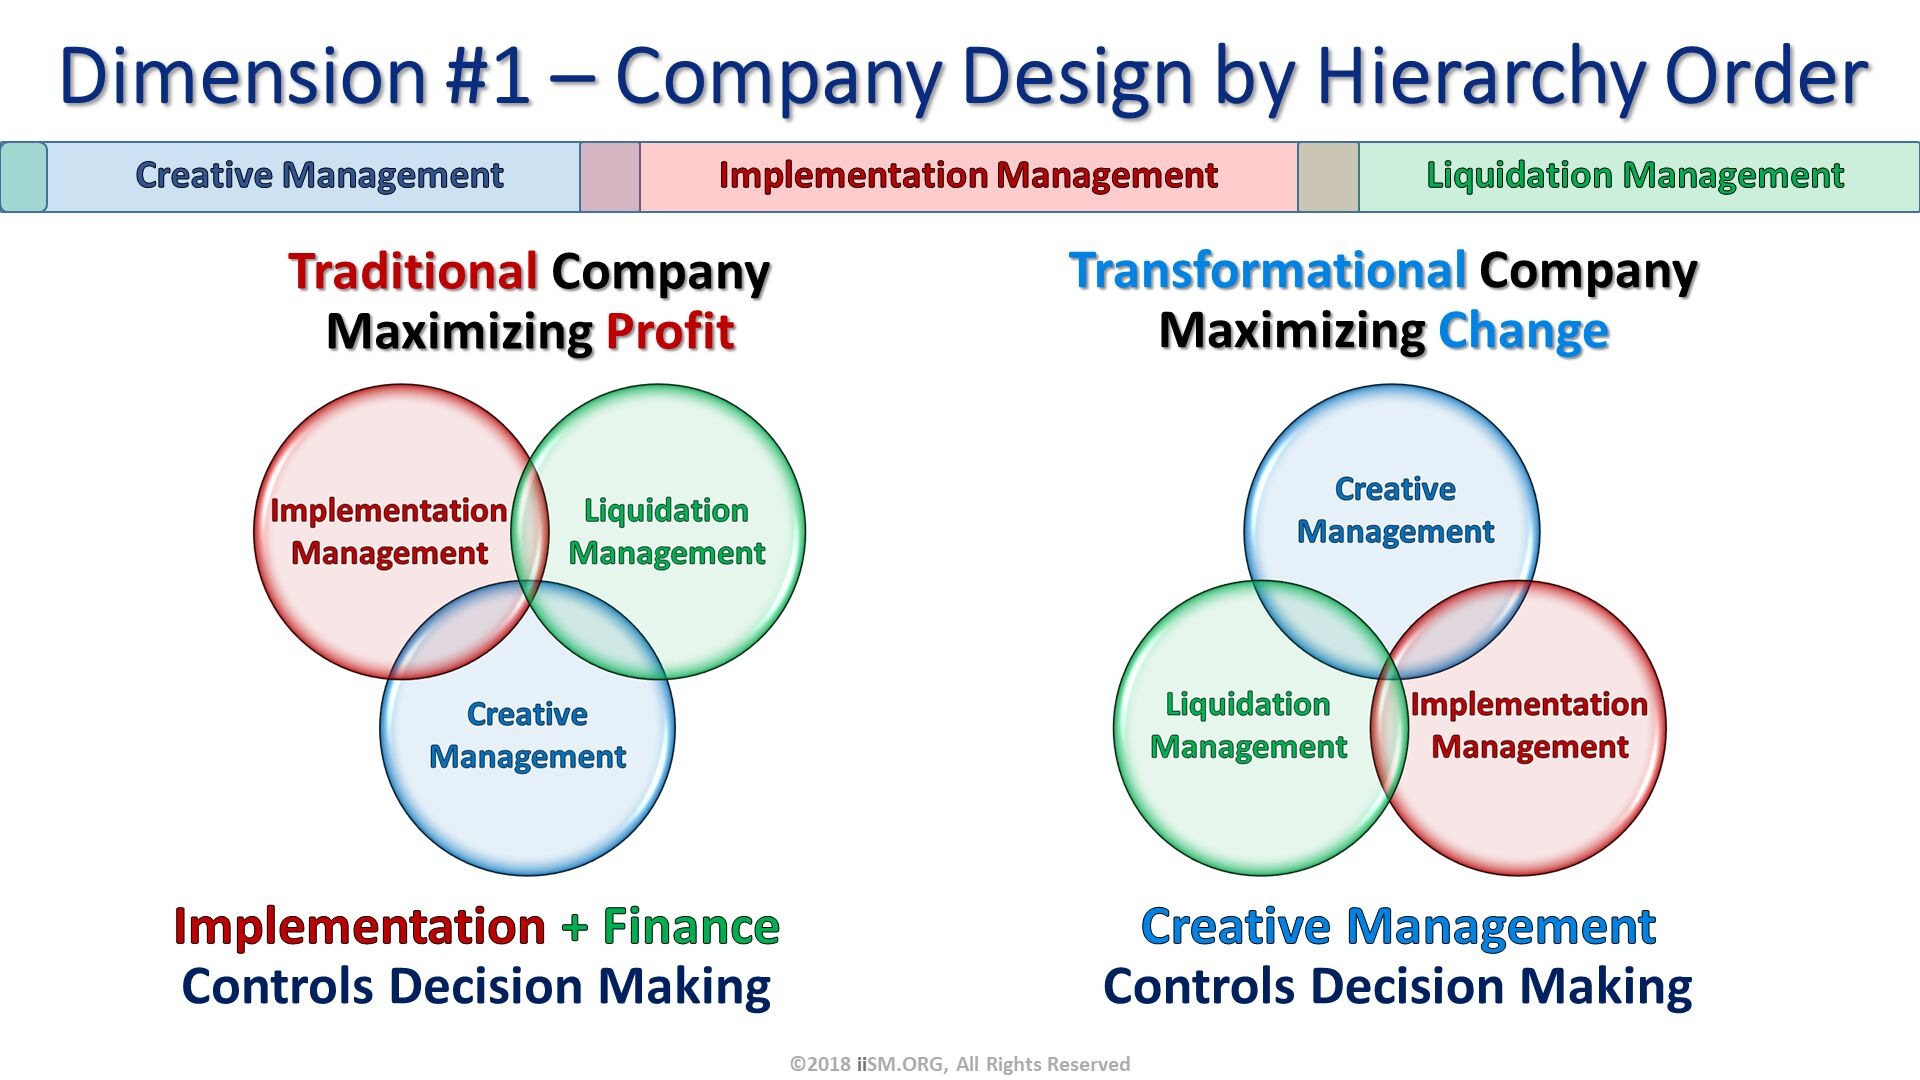 Dimension #1 – Company Design by Hierarchy Order. Traditional CompanyMaximizing Profit. Transformational CompanyMaximizing Change. ©2018 iiSM.ORG, All Rights Reserved. Implementation + Finance Controls Decision Making. Creative Management  Controls Decision Making.